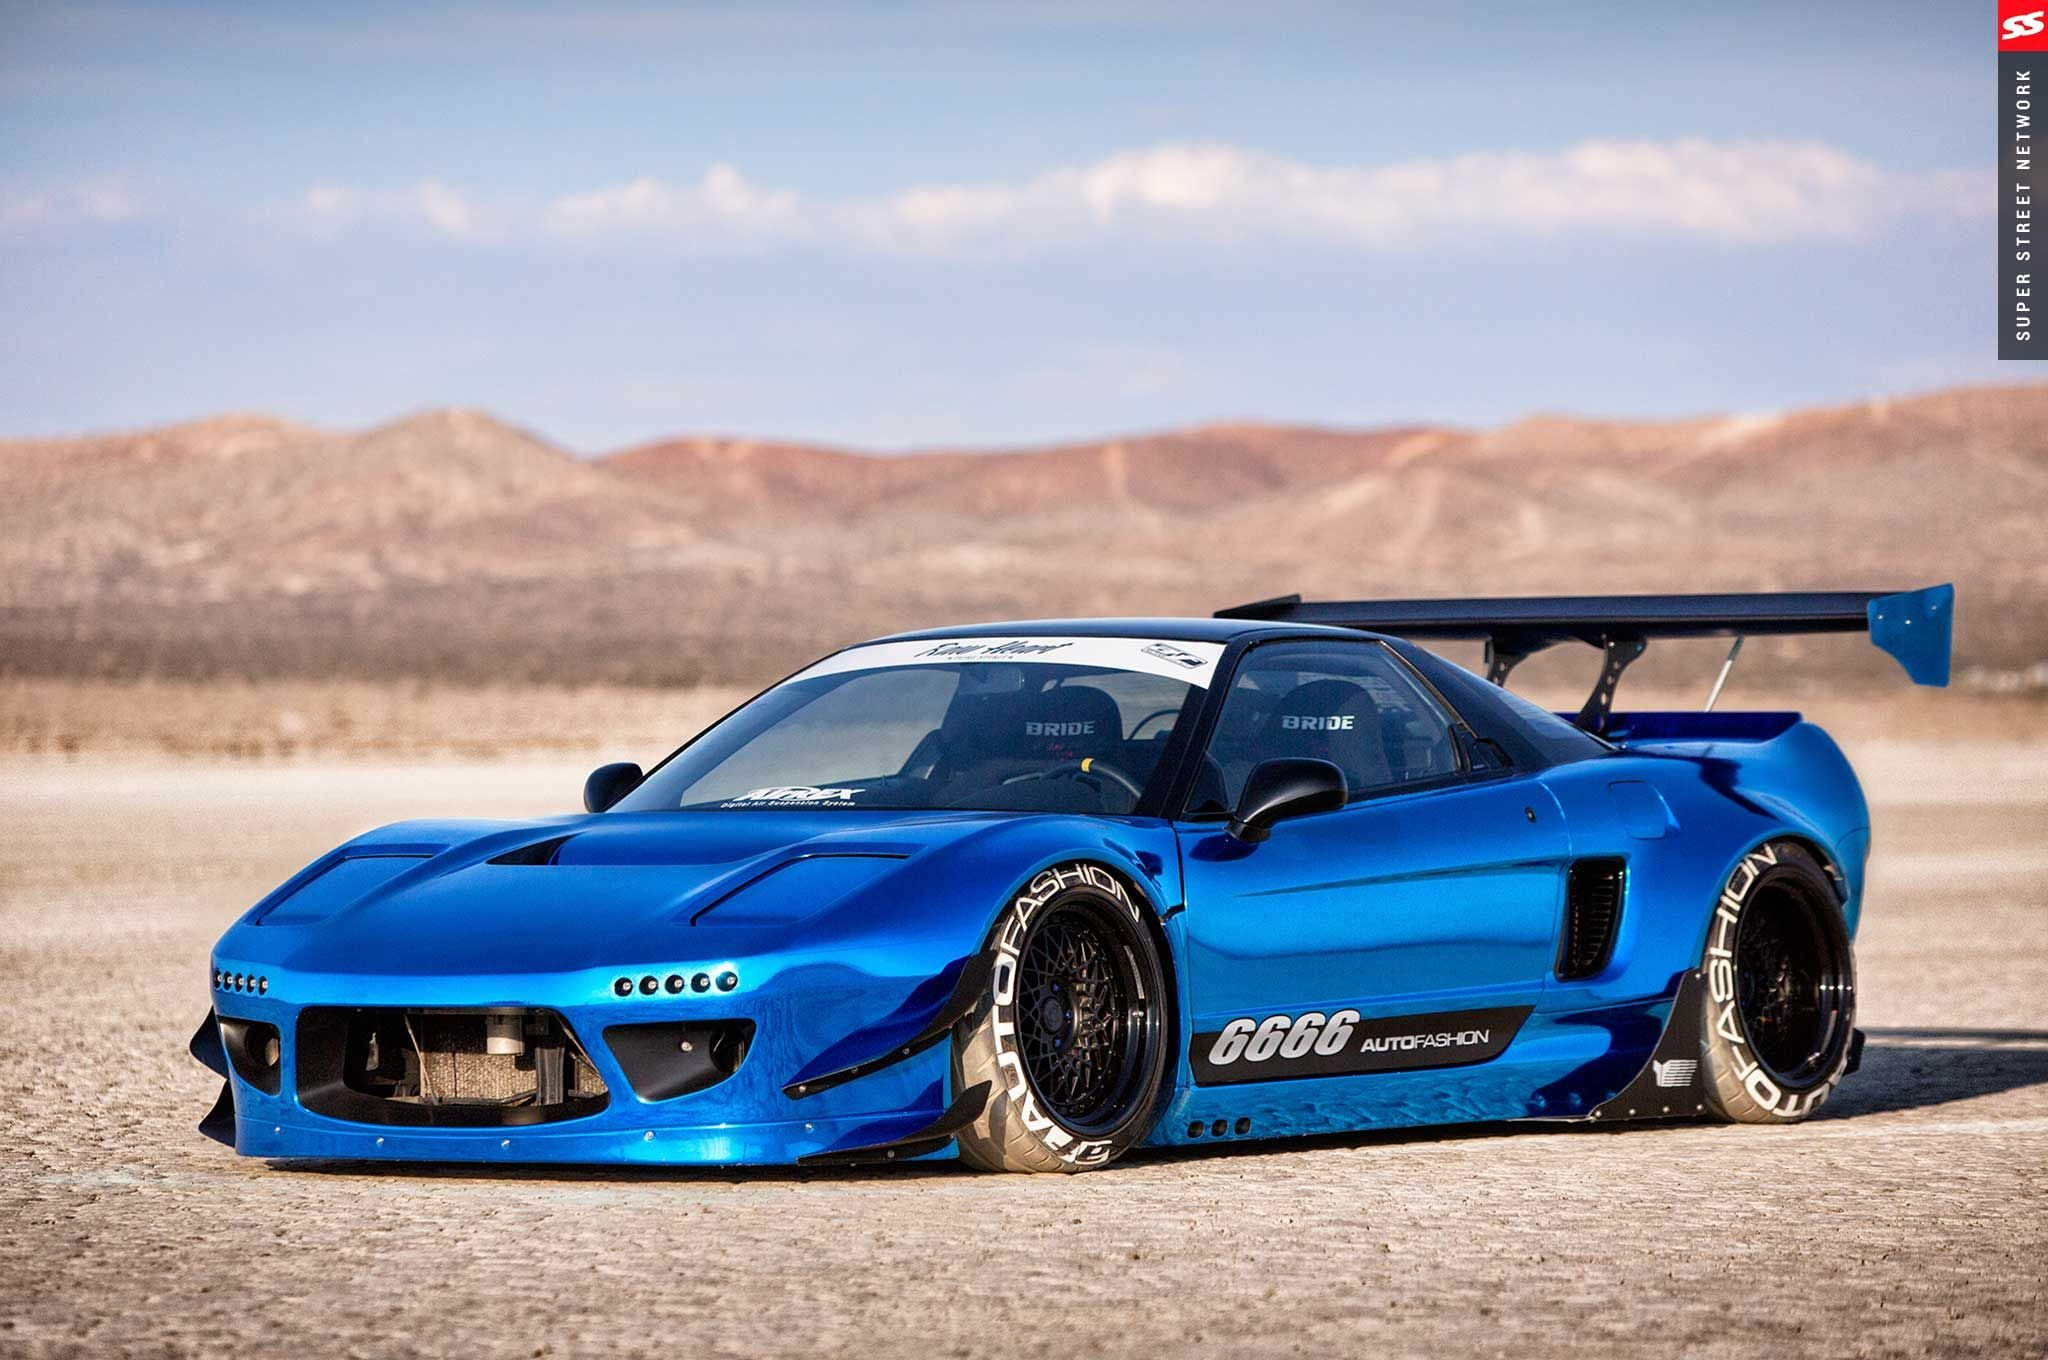 1992 acura nsx rocket bunny cars coupe modified blue wallpaper | 2048x1360 | 855629 | WallpaperUP